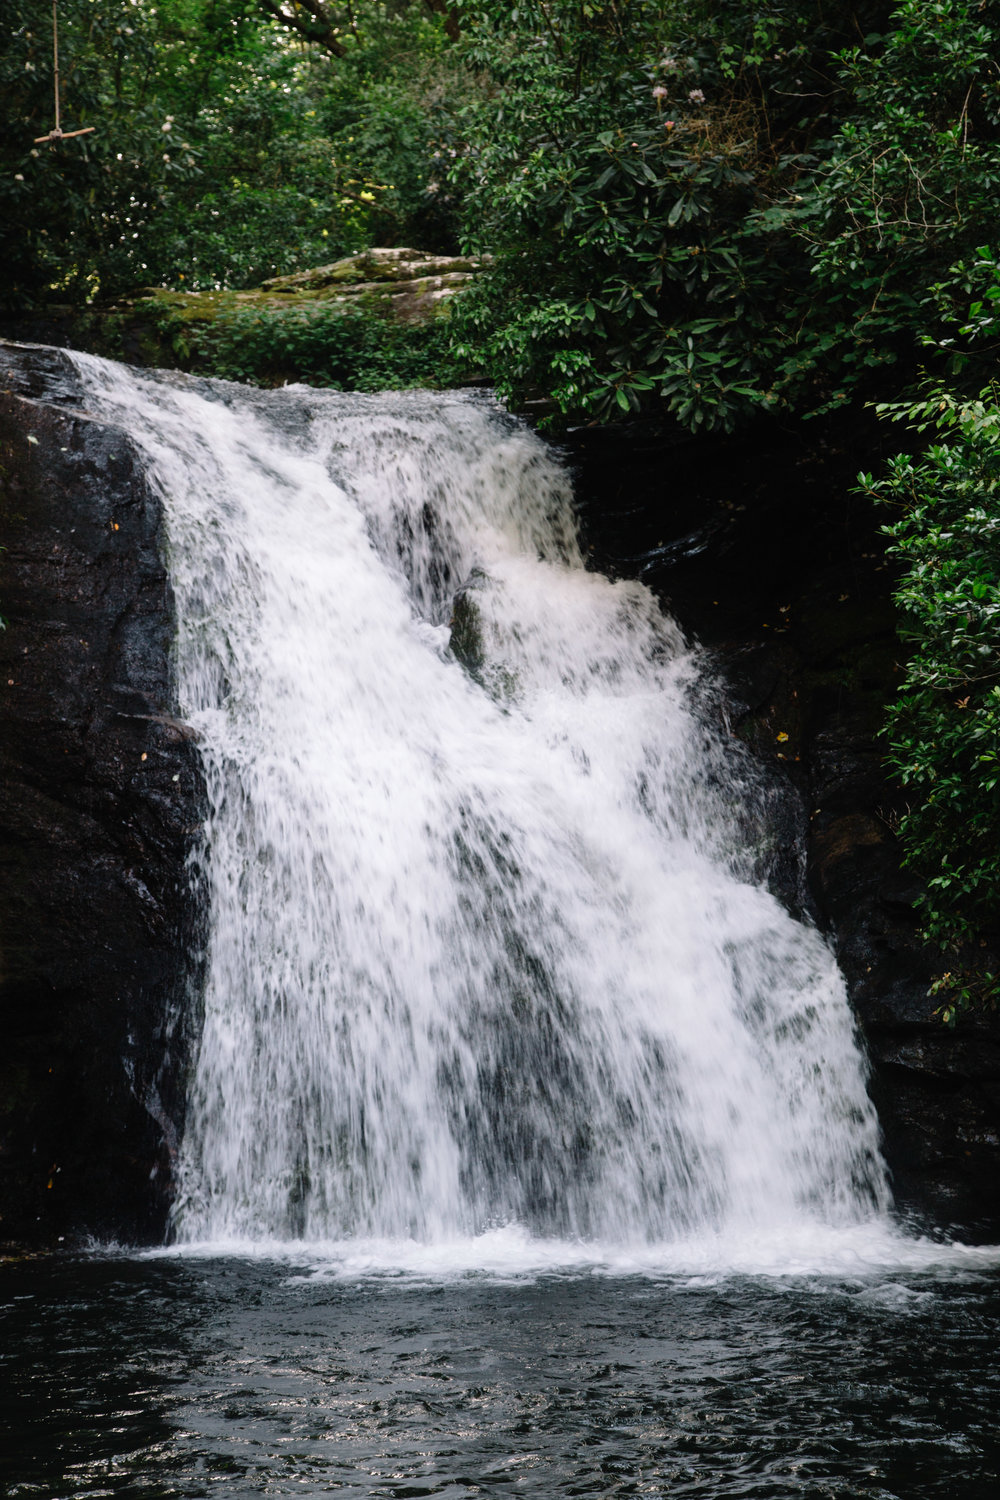 DO go chasing waterfalls! Head to moredetours.com to see the perfect guide to a beautiful Georgia summer day.